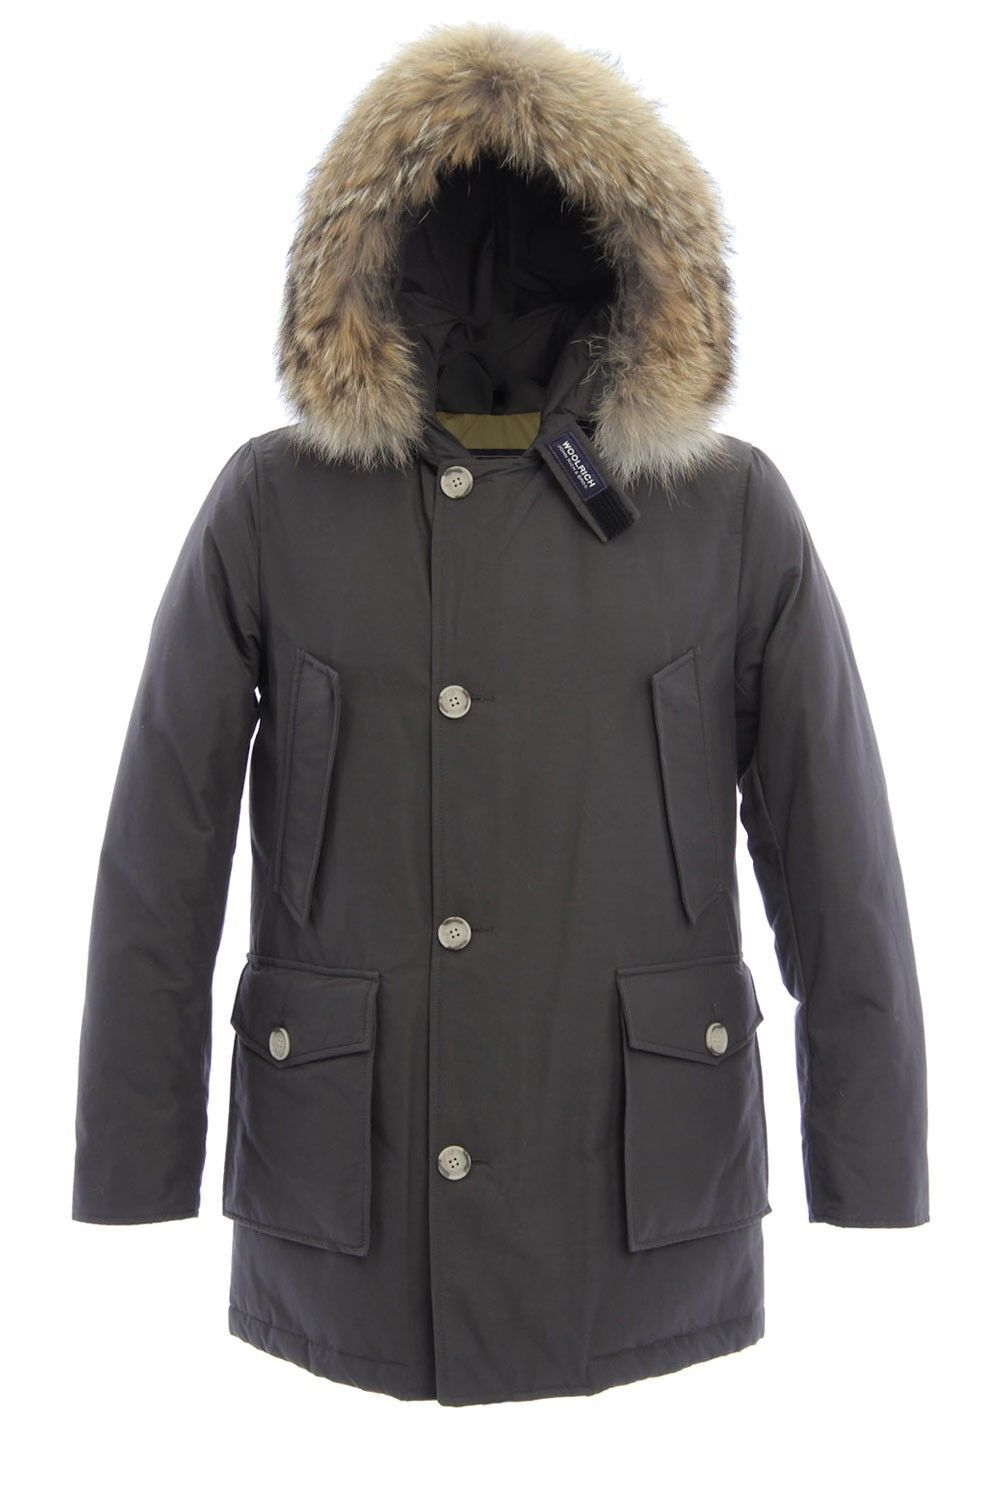 Top Down Jacket Brands - Jacket To